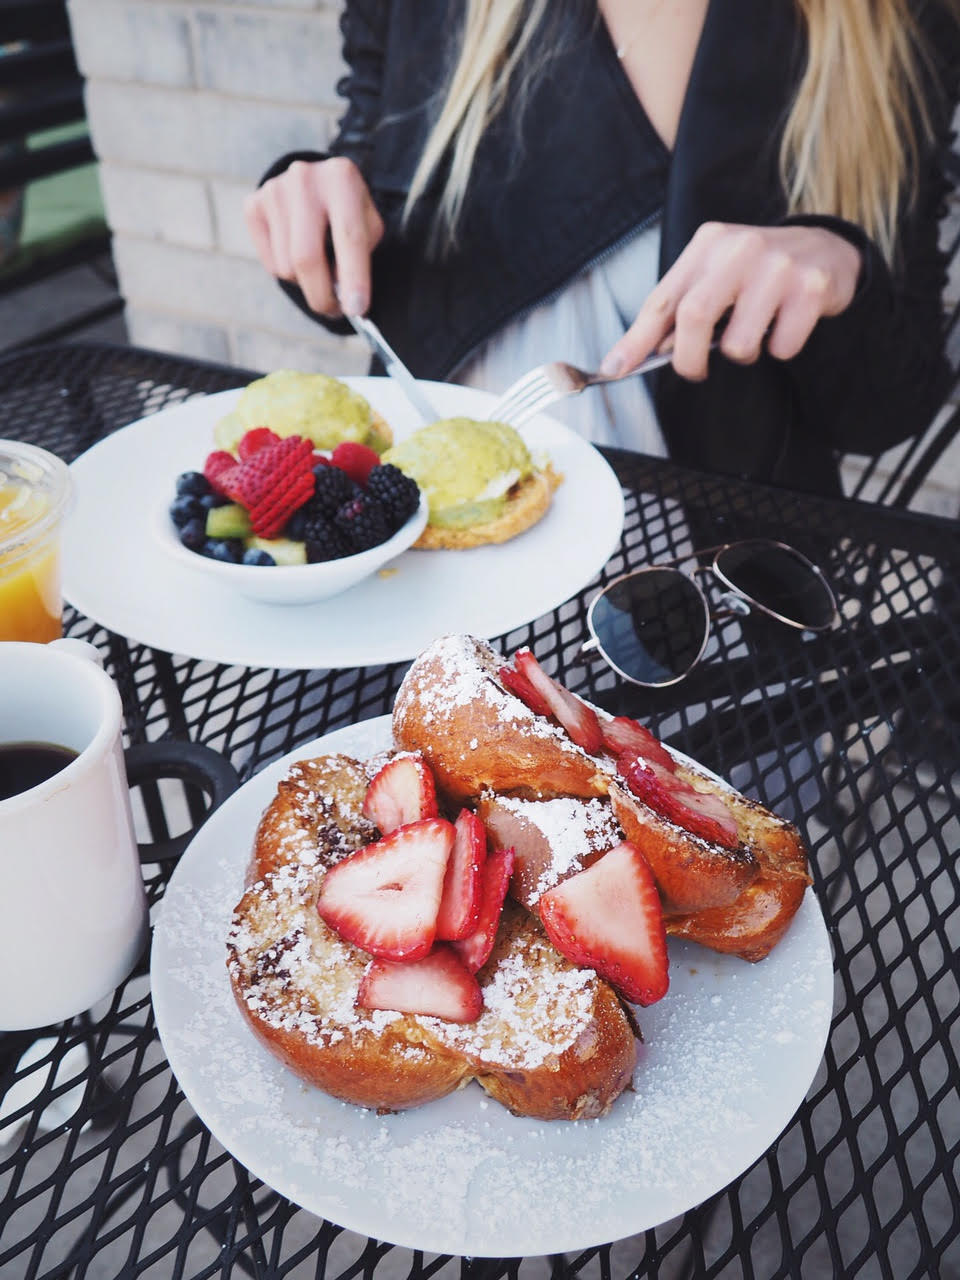 french toast with strawberries on a plate